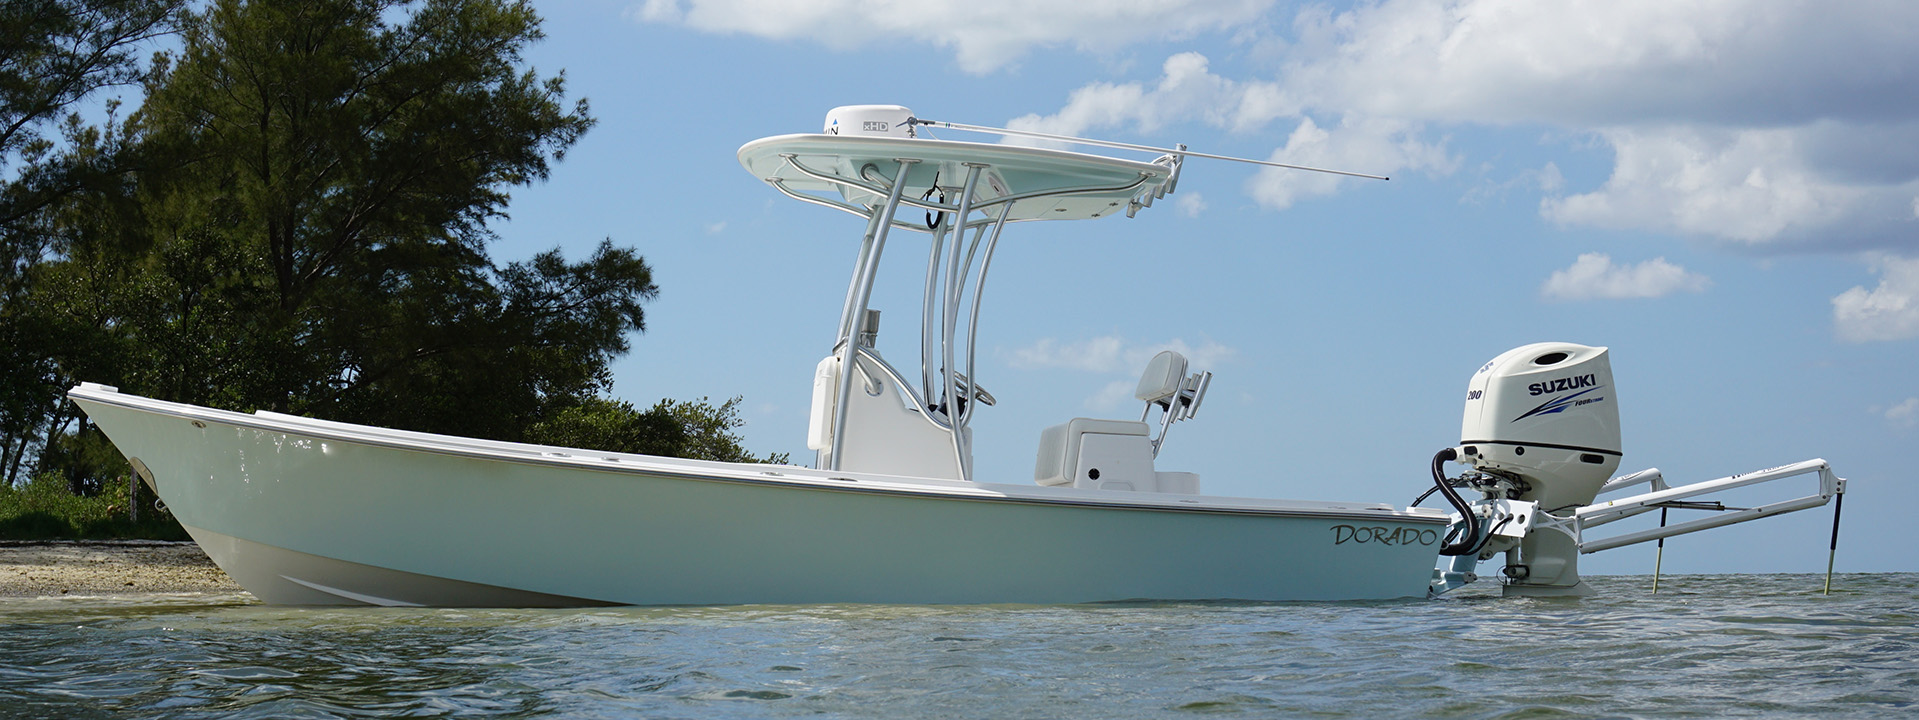 Dorado Custom Fishing Boats, New and Used Fishing Boats For Sale